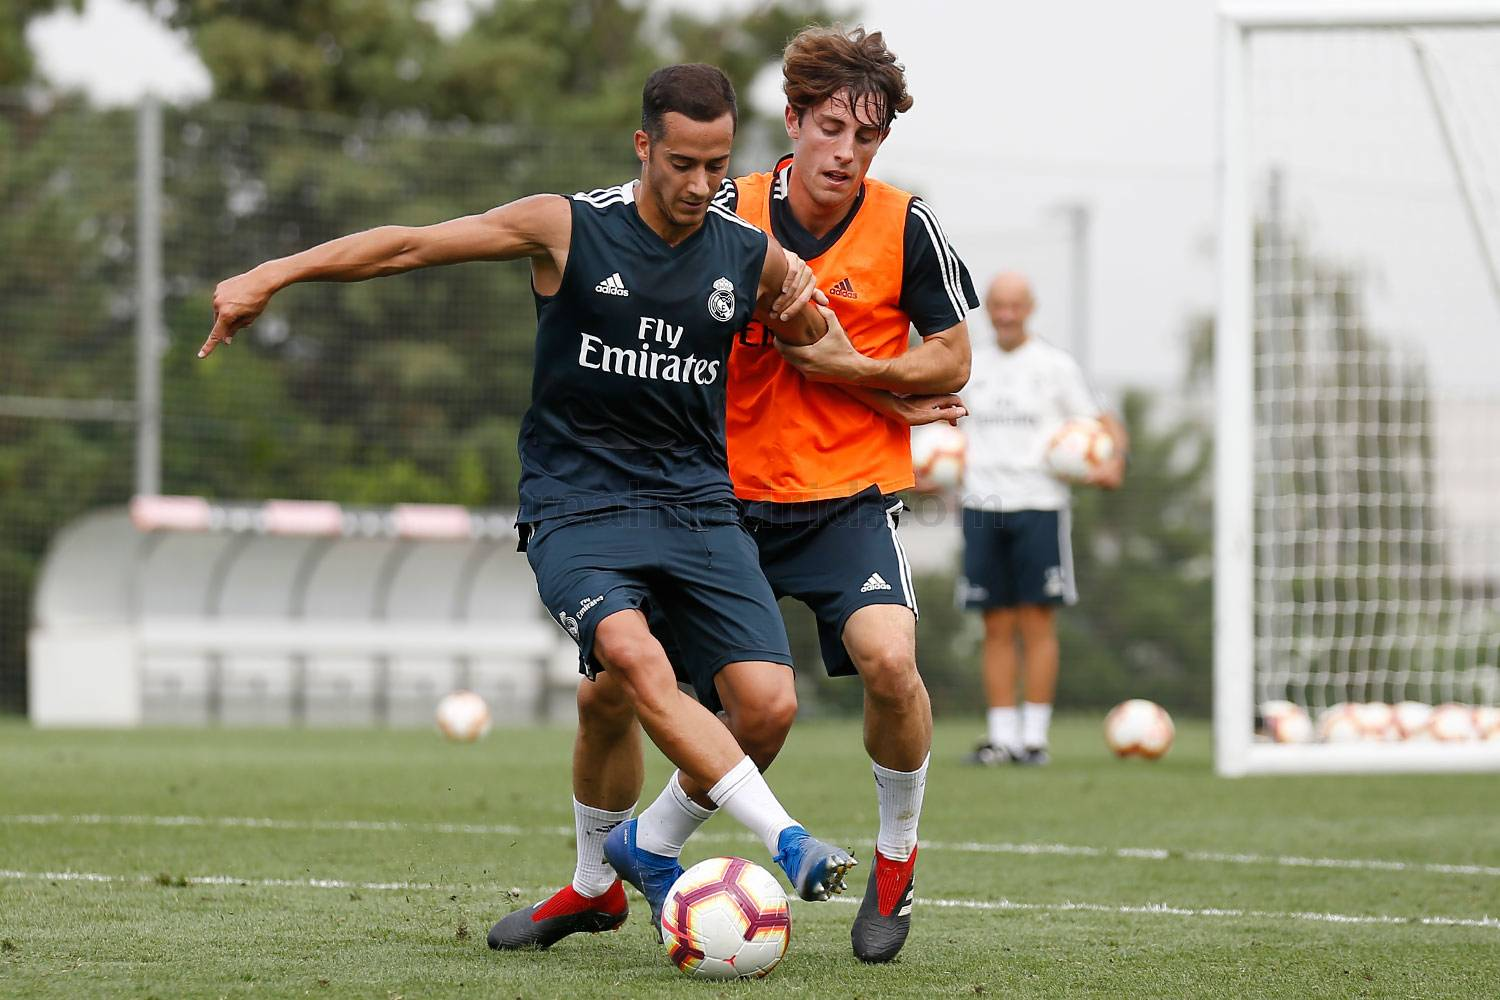 Real Madrid - Entrenamiento del Real Madrid - 03-09-2018